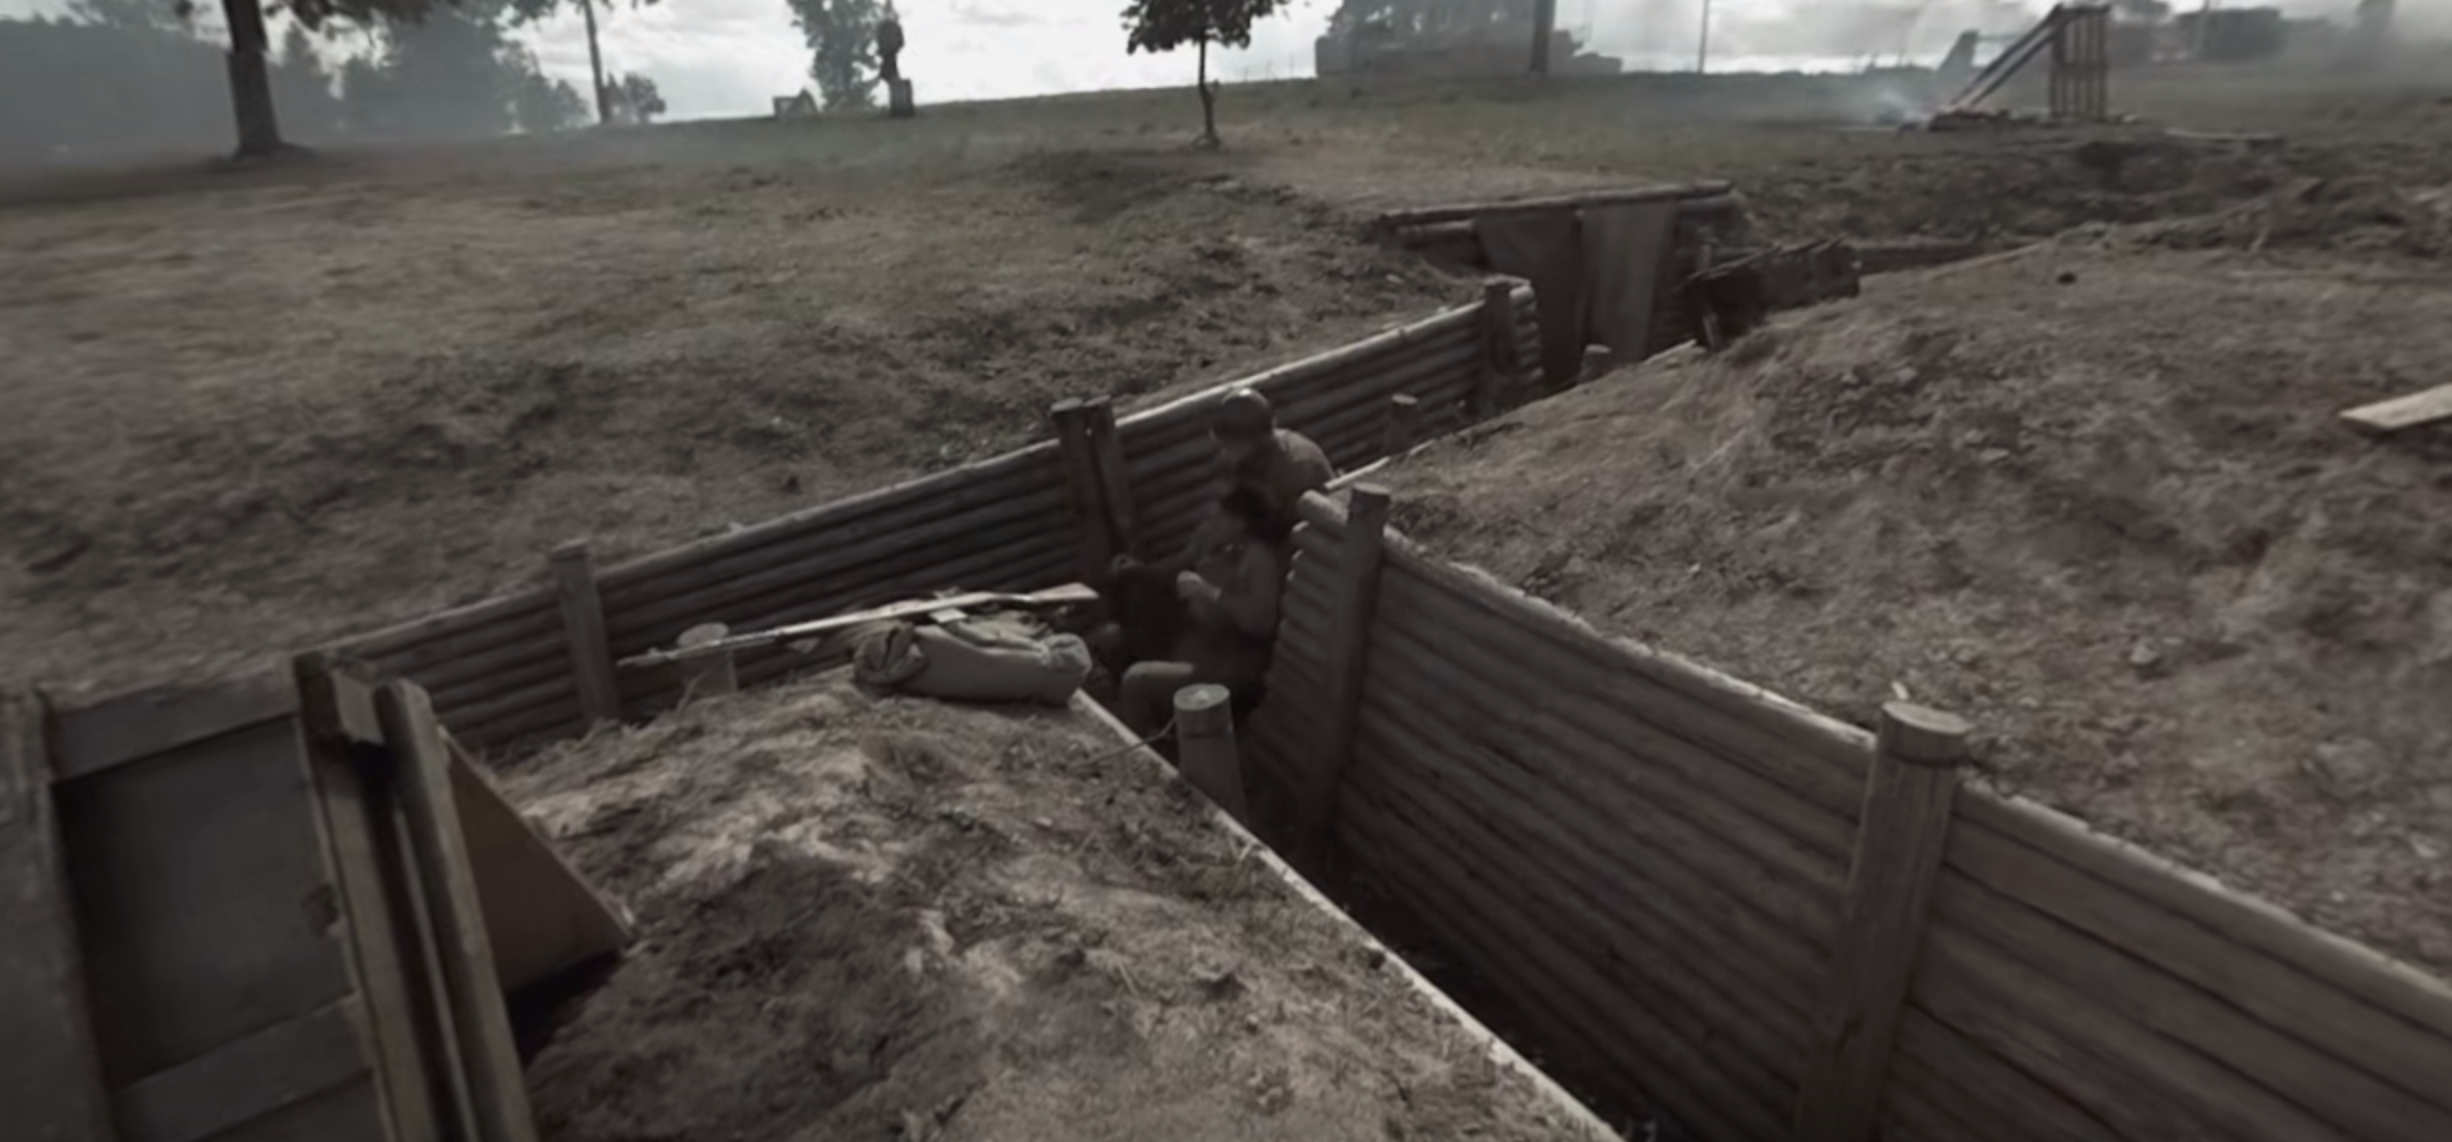 World of Tanks dev Wargaming releases 360 degree WW2 battle reenactment video